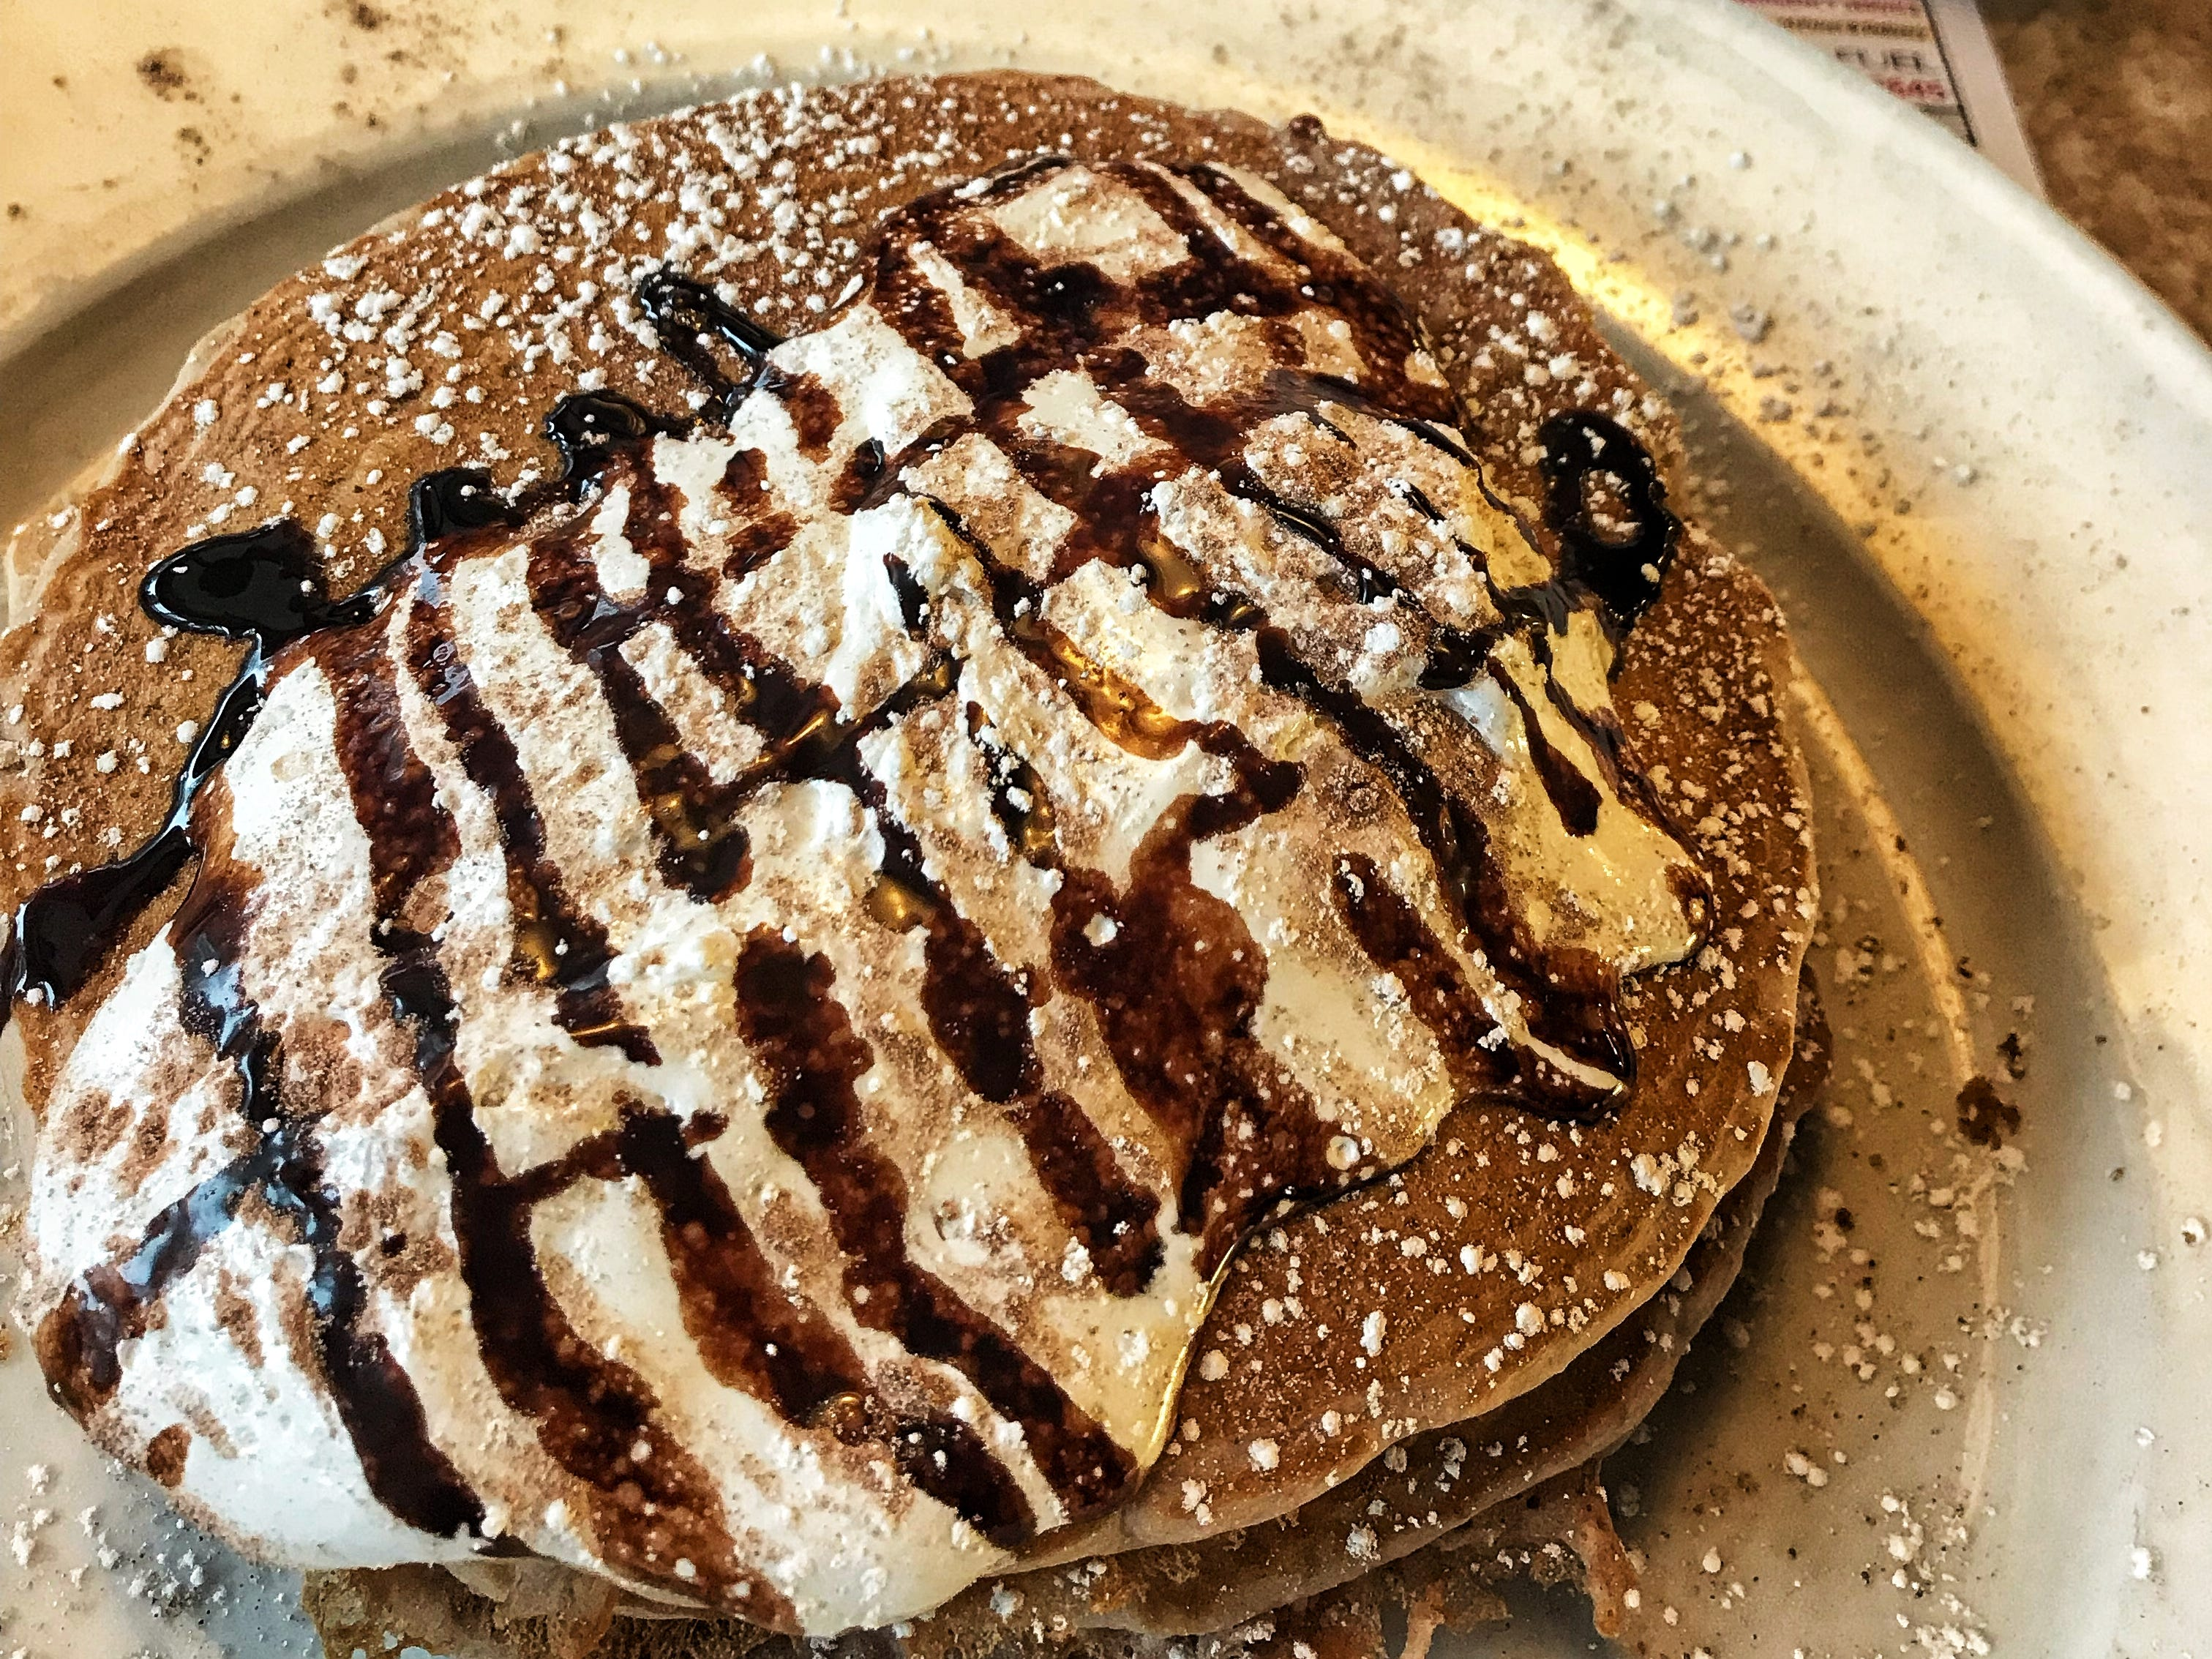 The Brownie S'mores Pancake from DDs Diner in Ossining. Photographed Dec. 13, 2018.